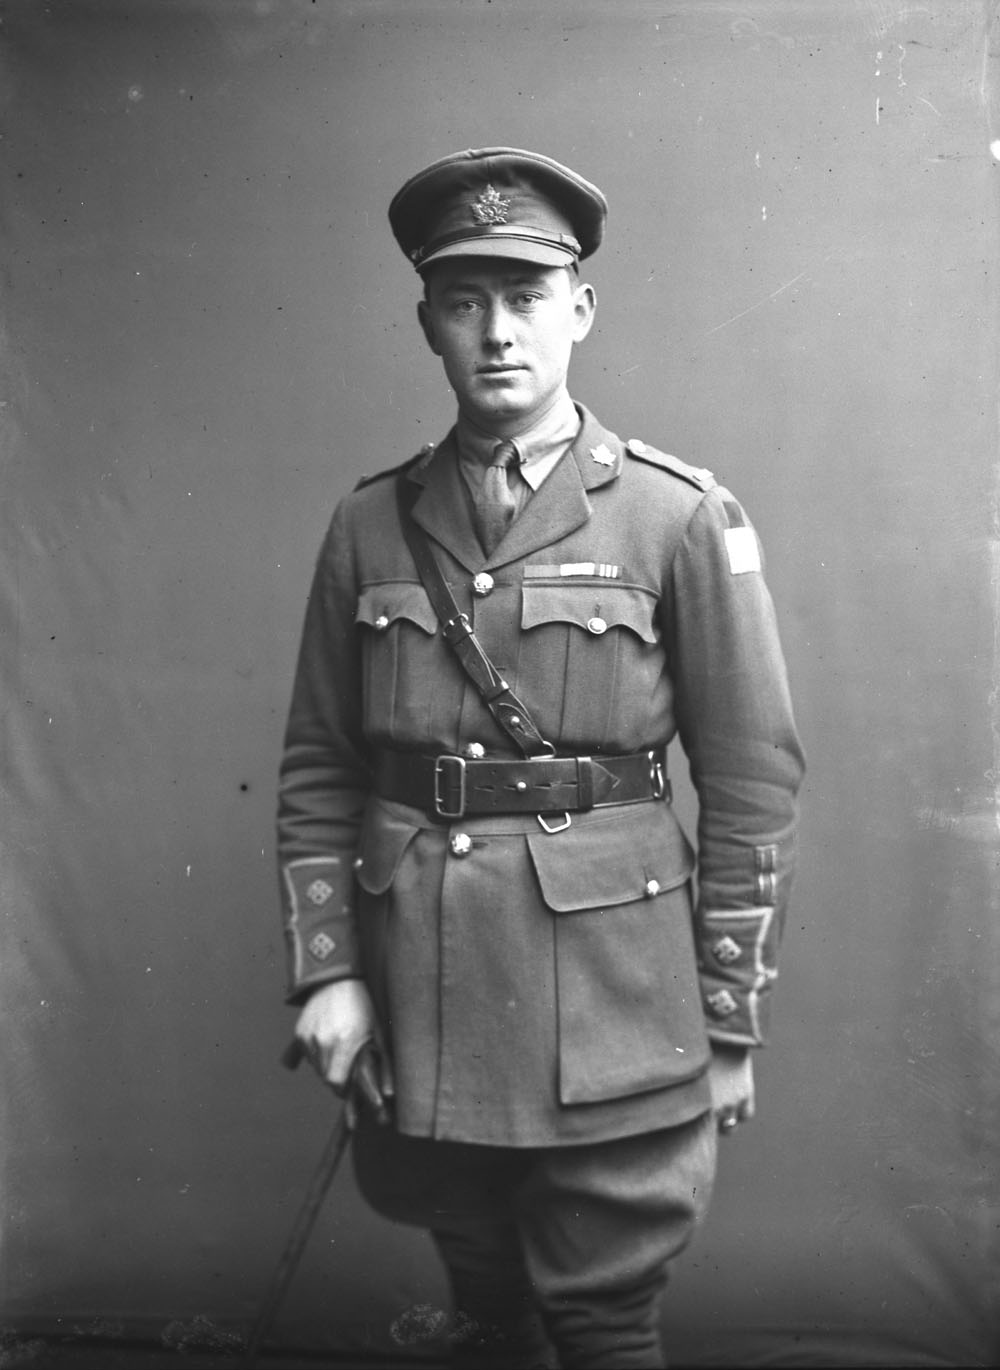 A black-and-white photograph of a military officer standing with a cane.